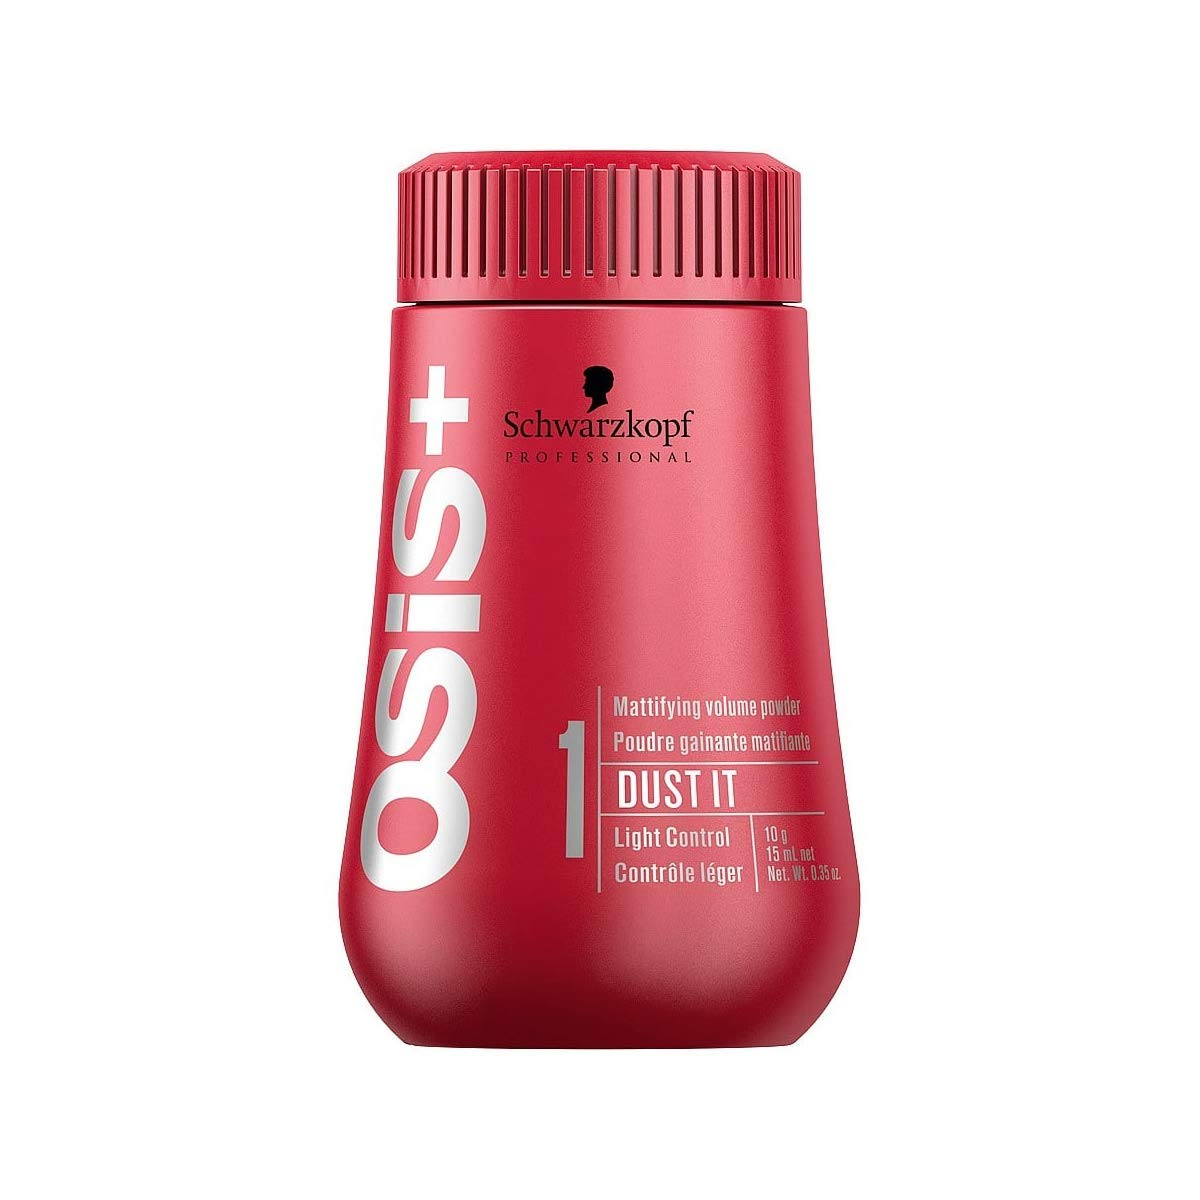 Osis Dust It Texture Mattifying Powder